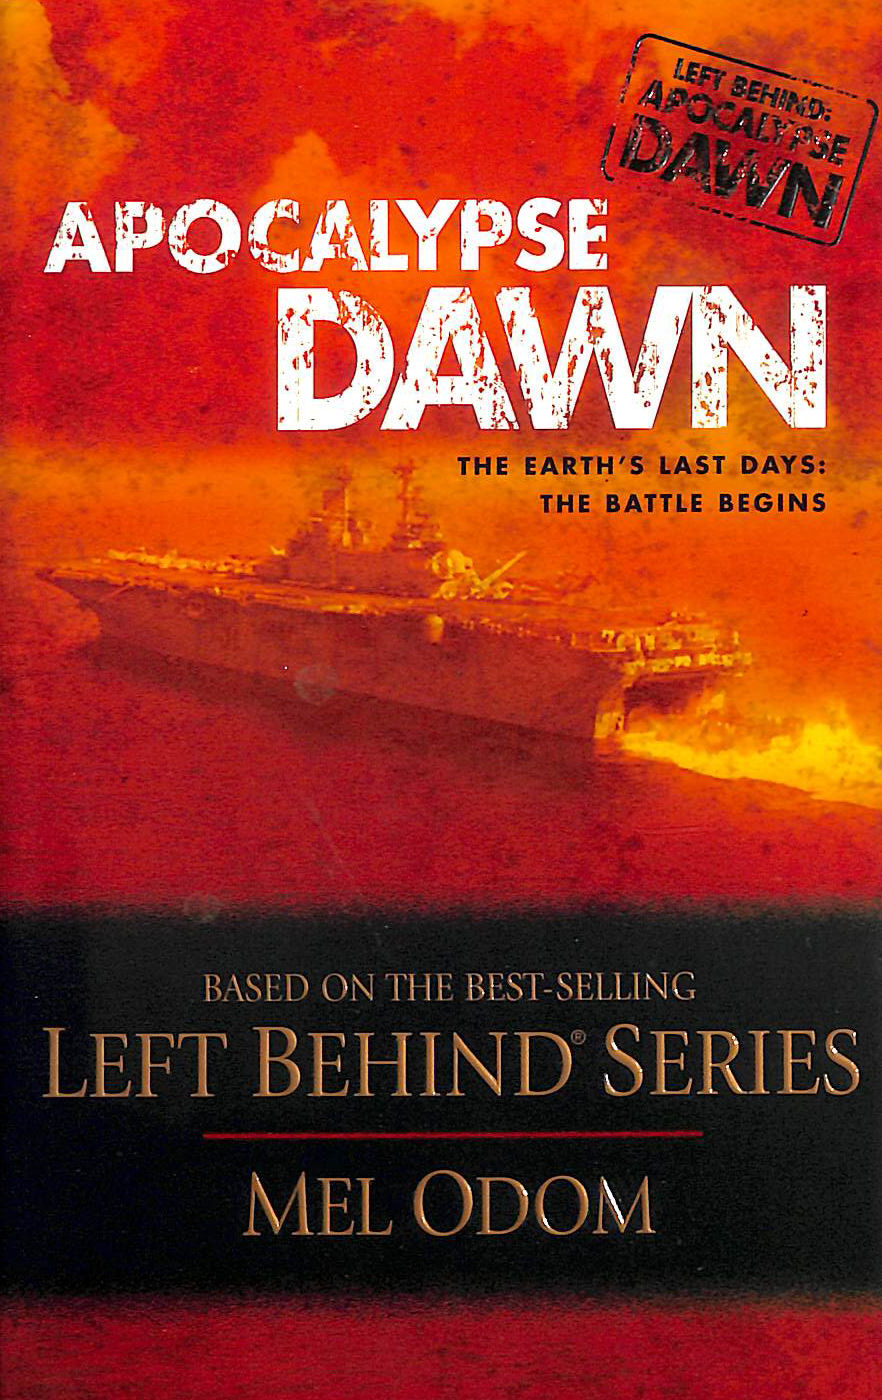 Image for Apocalypse Dawn: The Earth's Last Days - The Battle Begins